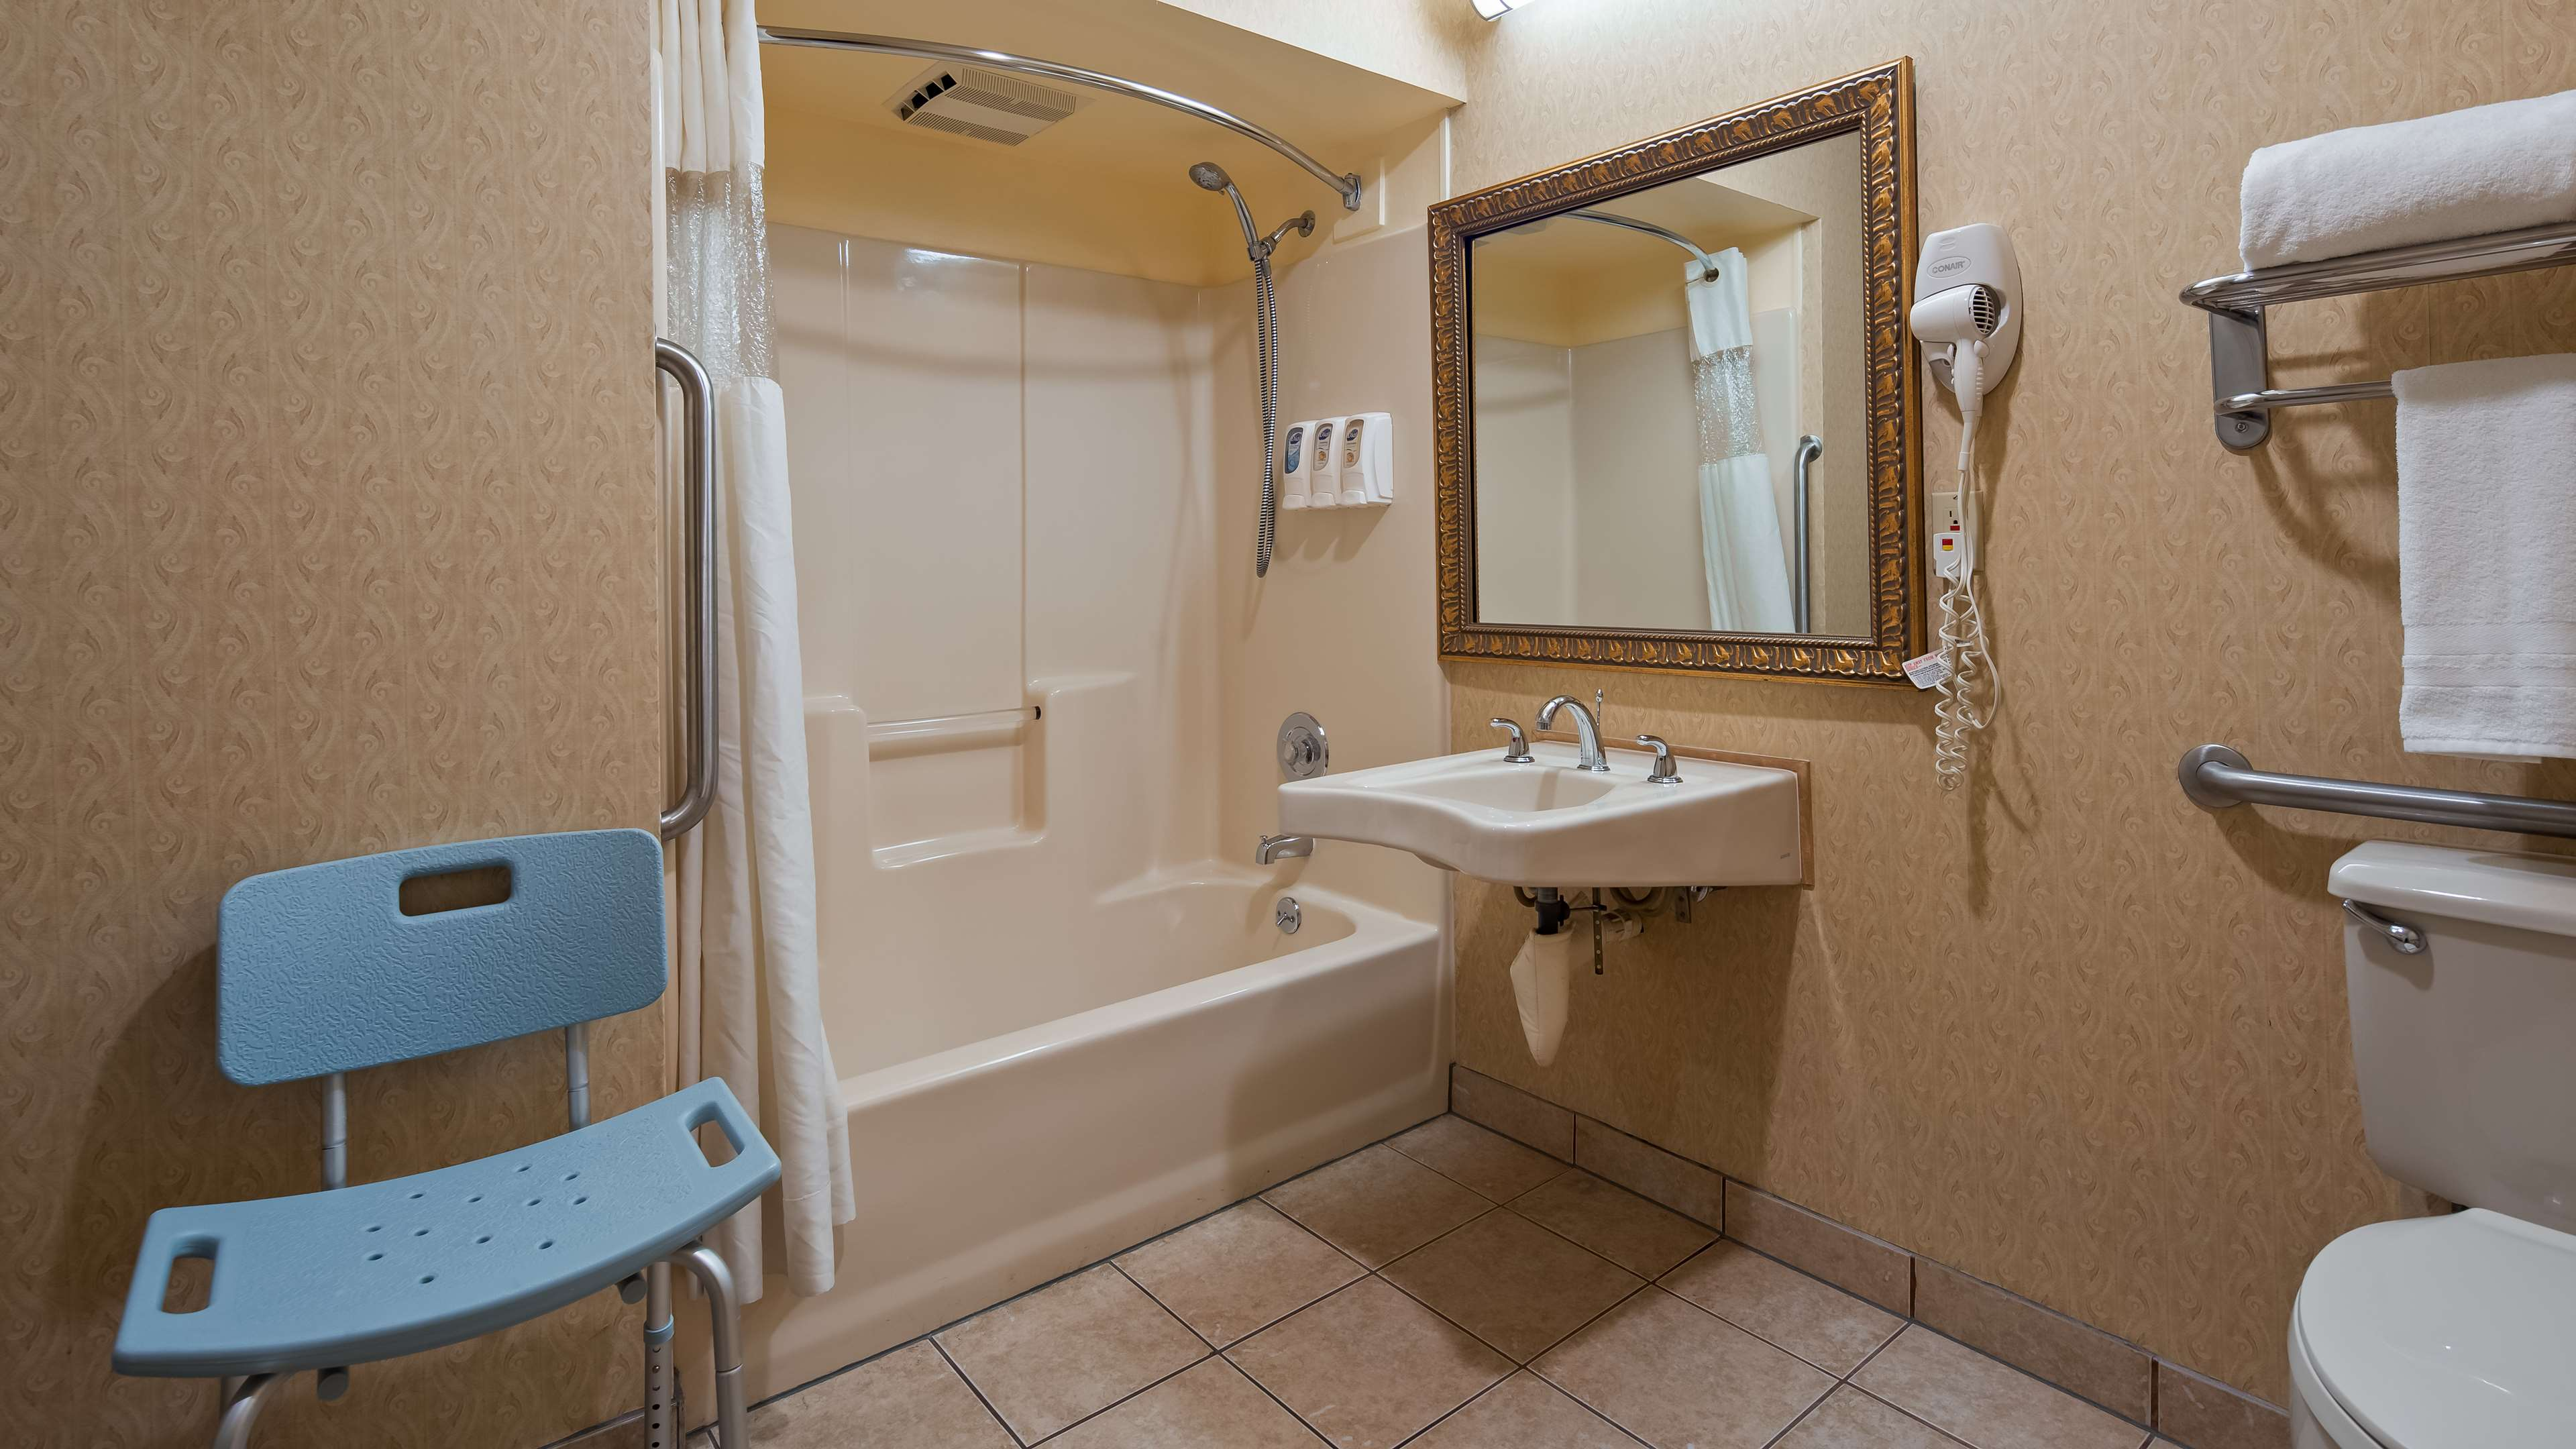 Best Western Inn & Suites image 11